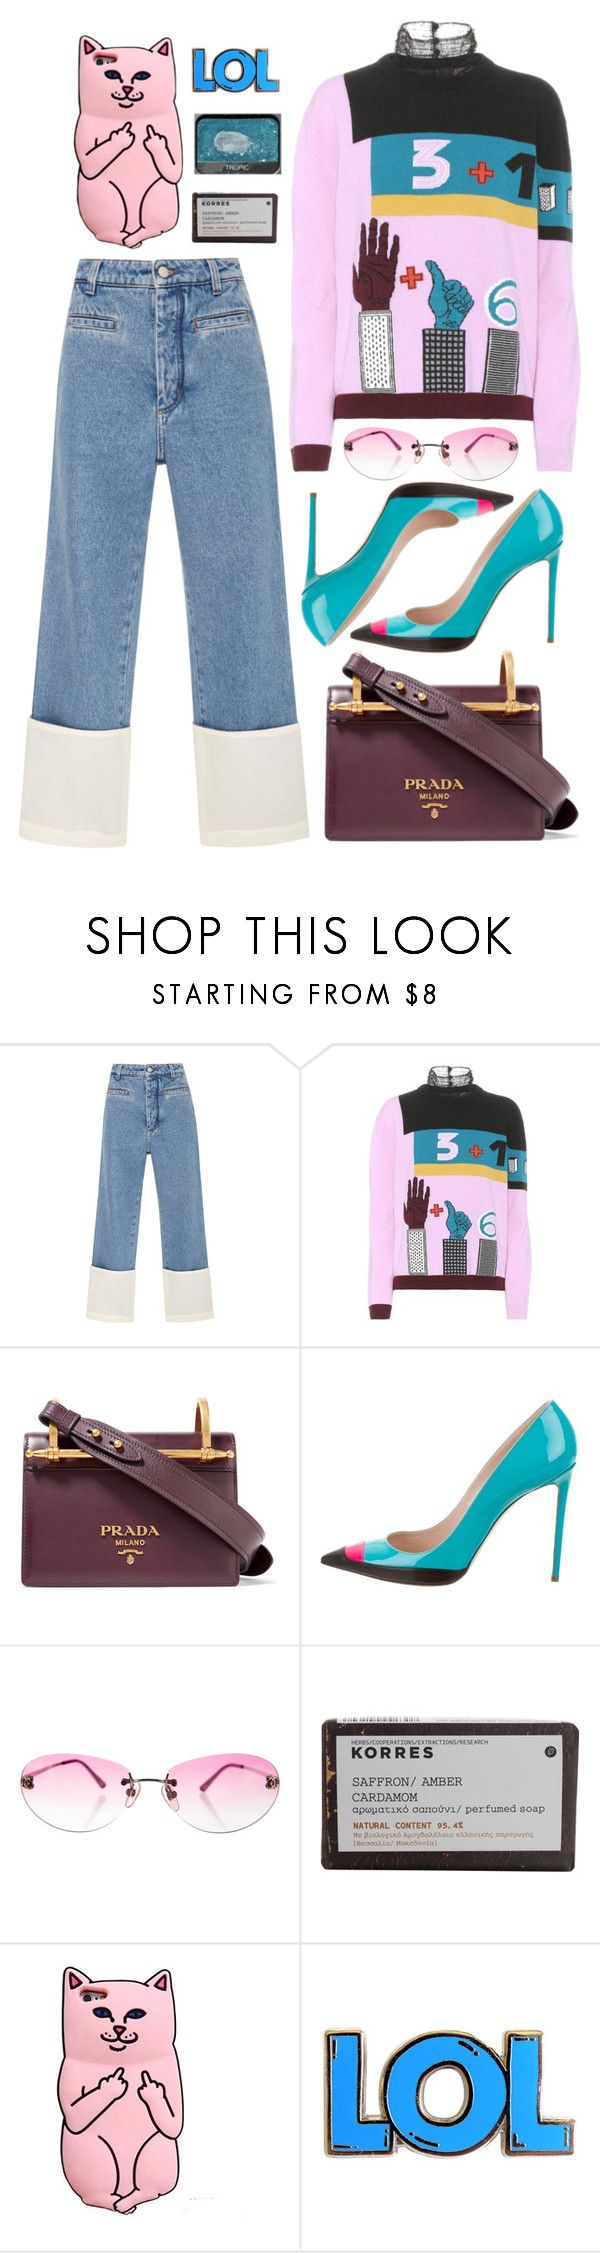 """We walk the plank with our eyes wide open"" by emmaadv ❤ liked on Polyvore featuring Loewe, Valentino, Prada, Ruthie Davis, Chanel and Korres"